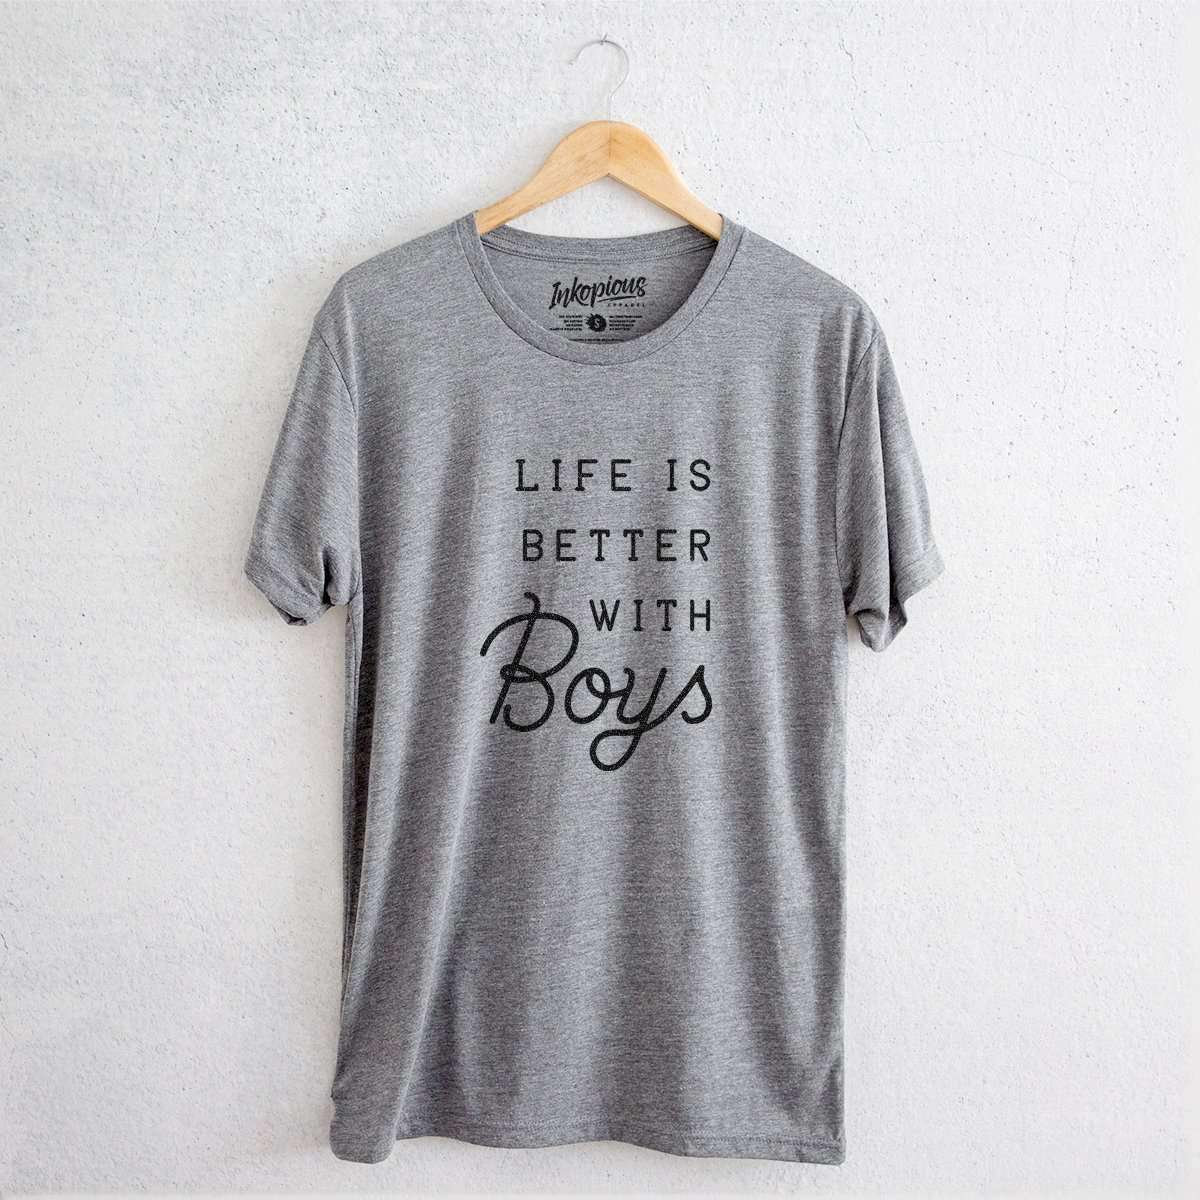 Life is Better with Boys - Tri-Blend Unisex Crew